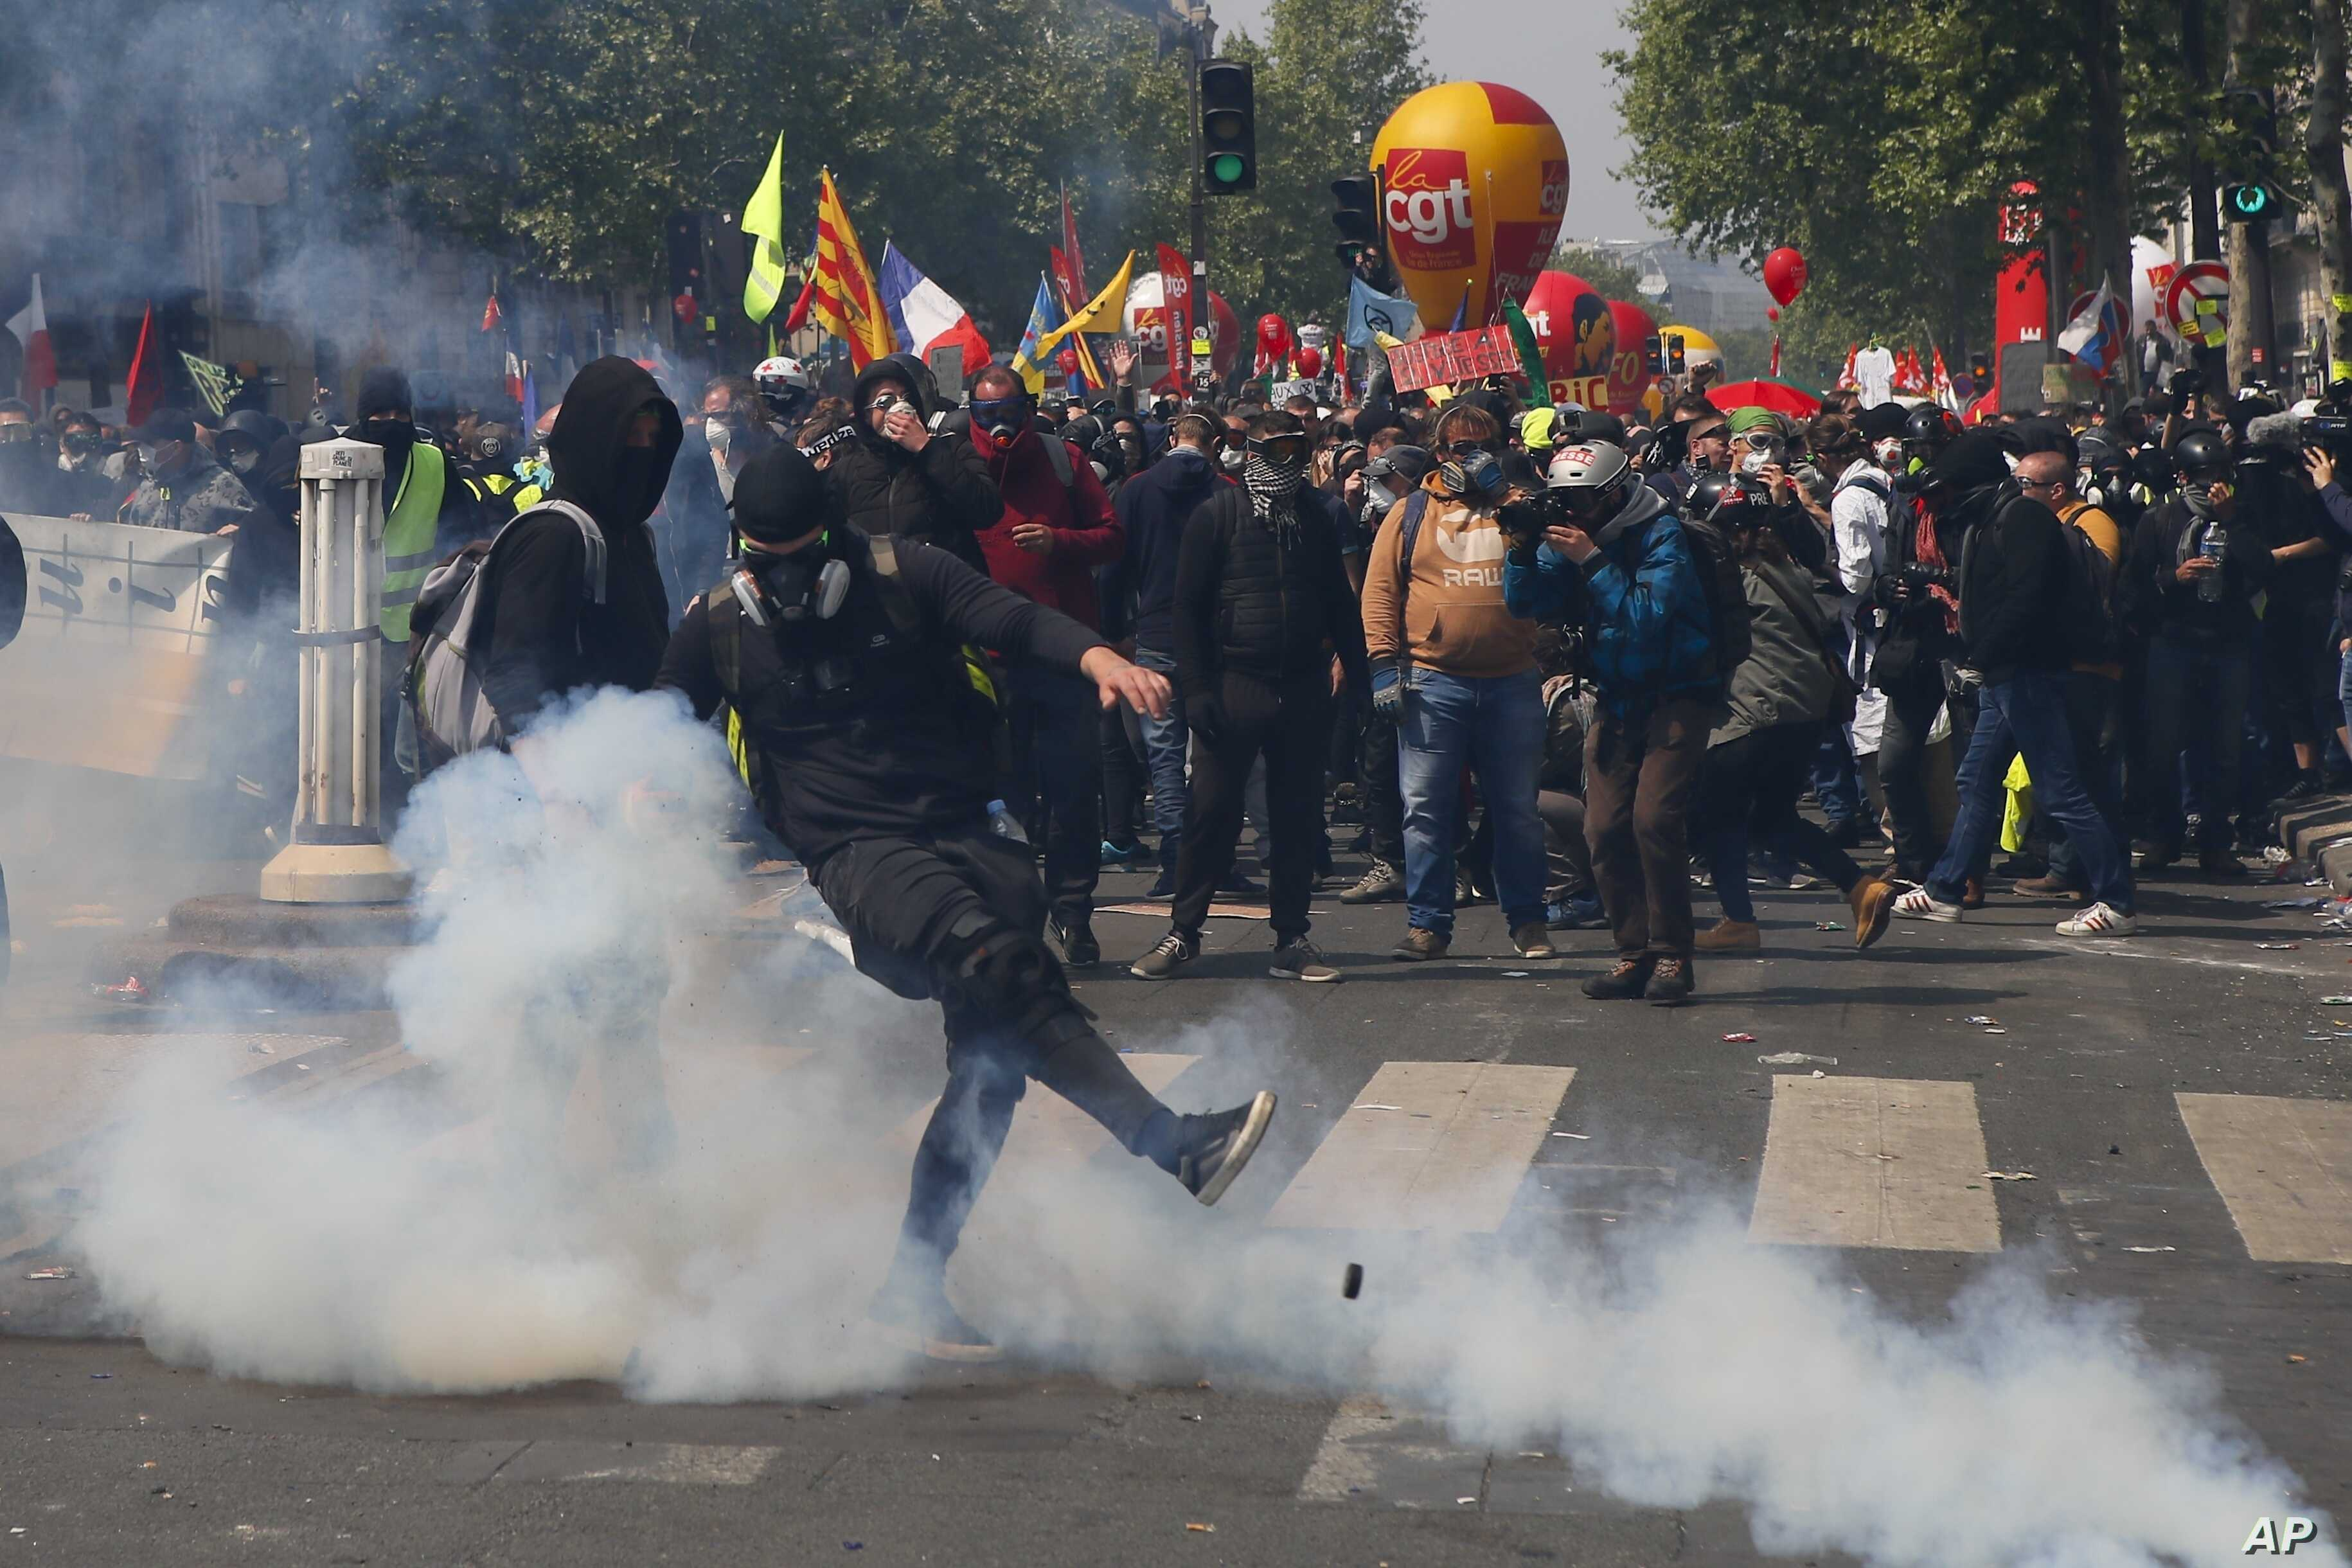 An activist kicks away a tear gas canister during a May Day demonstration in Paris, Wednesday, May 1, 2019.